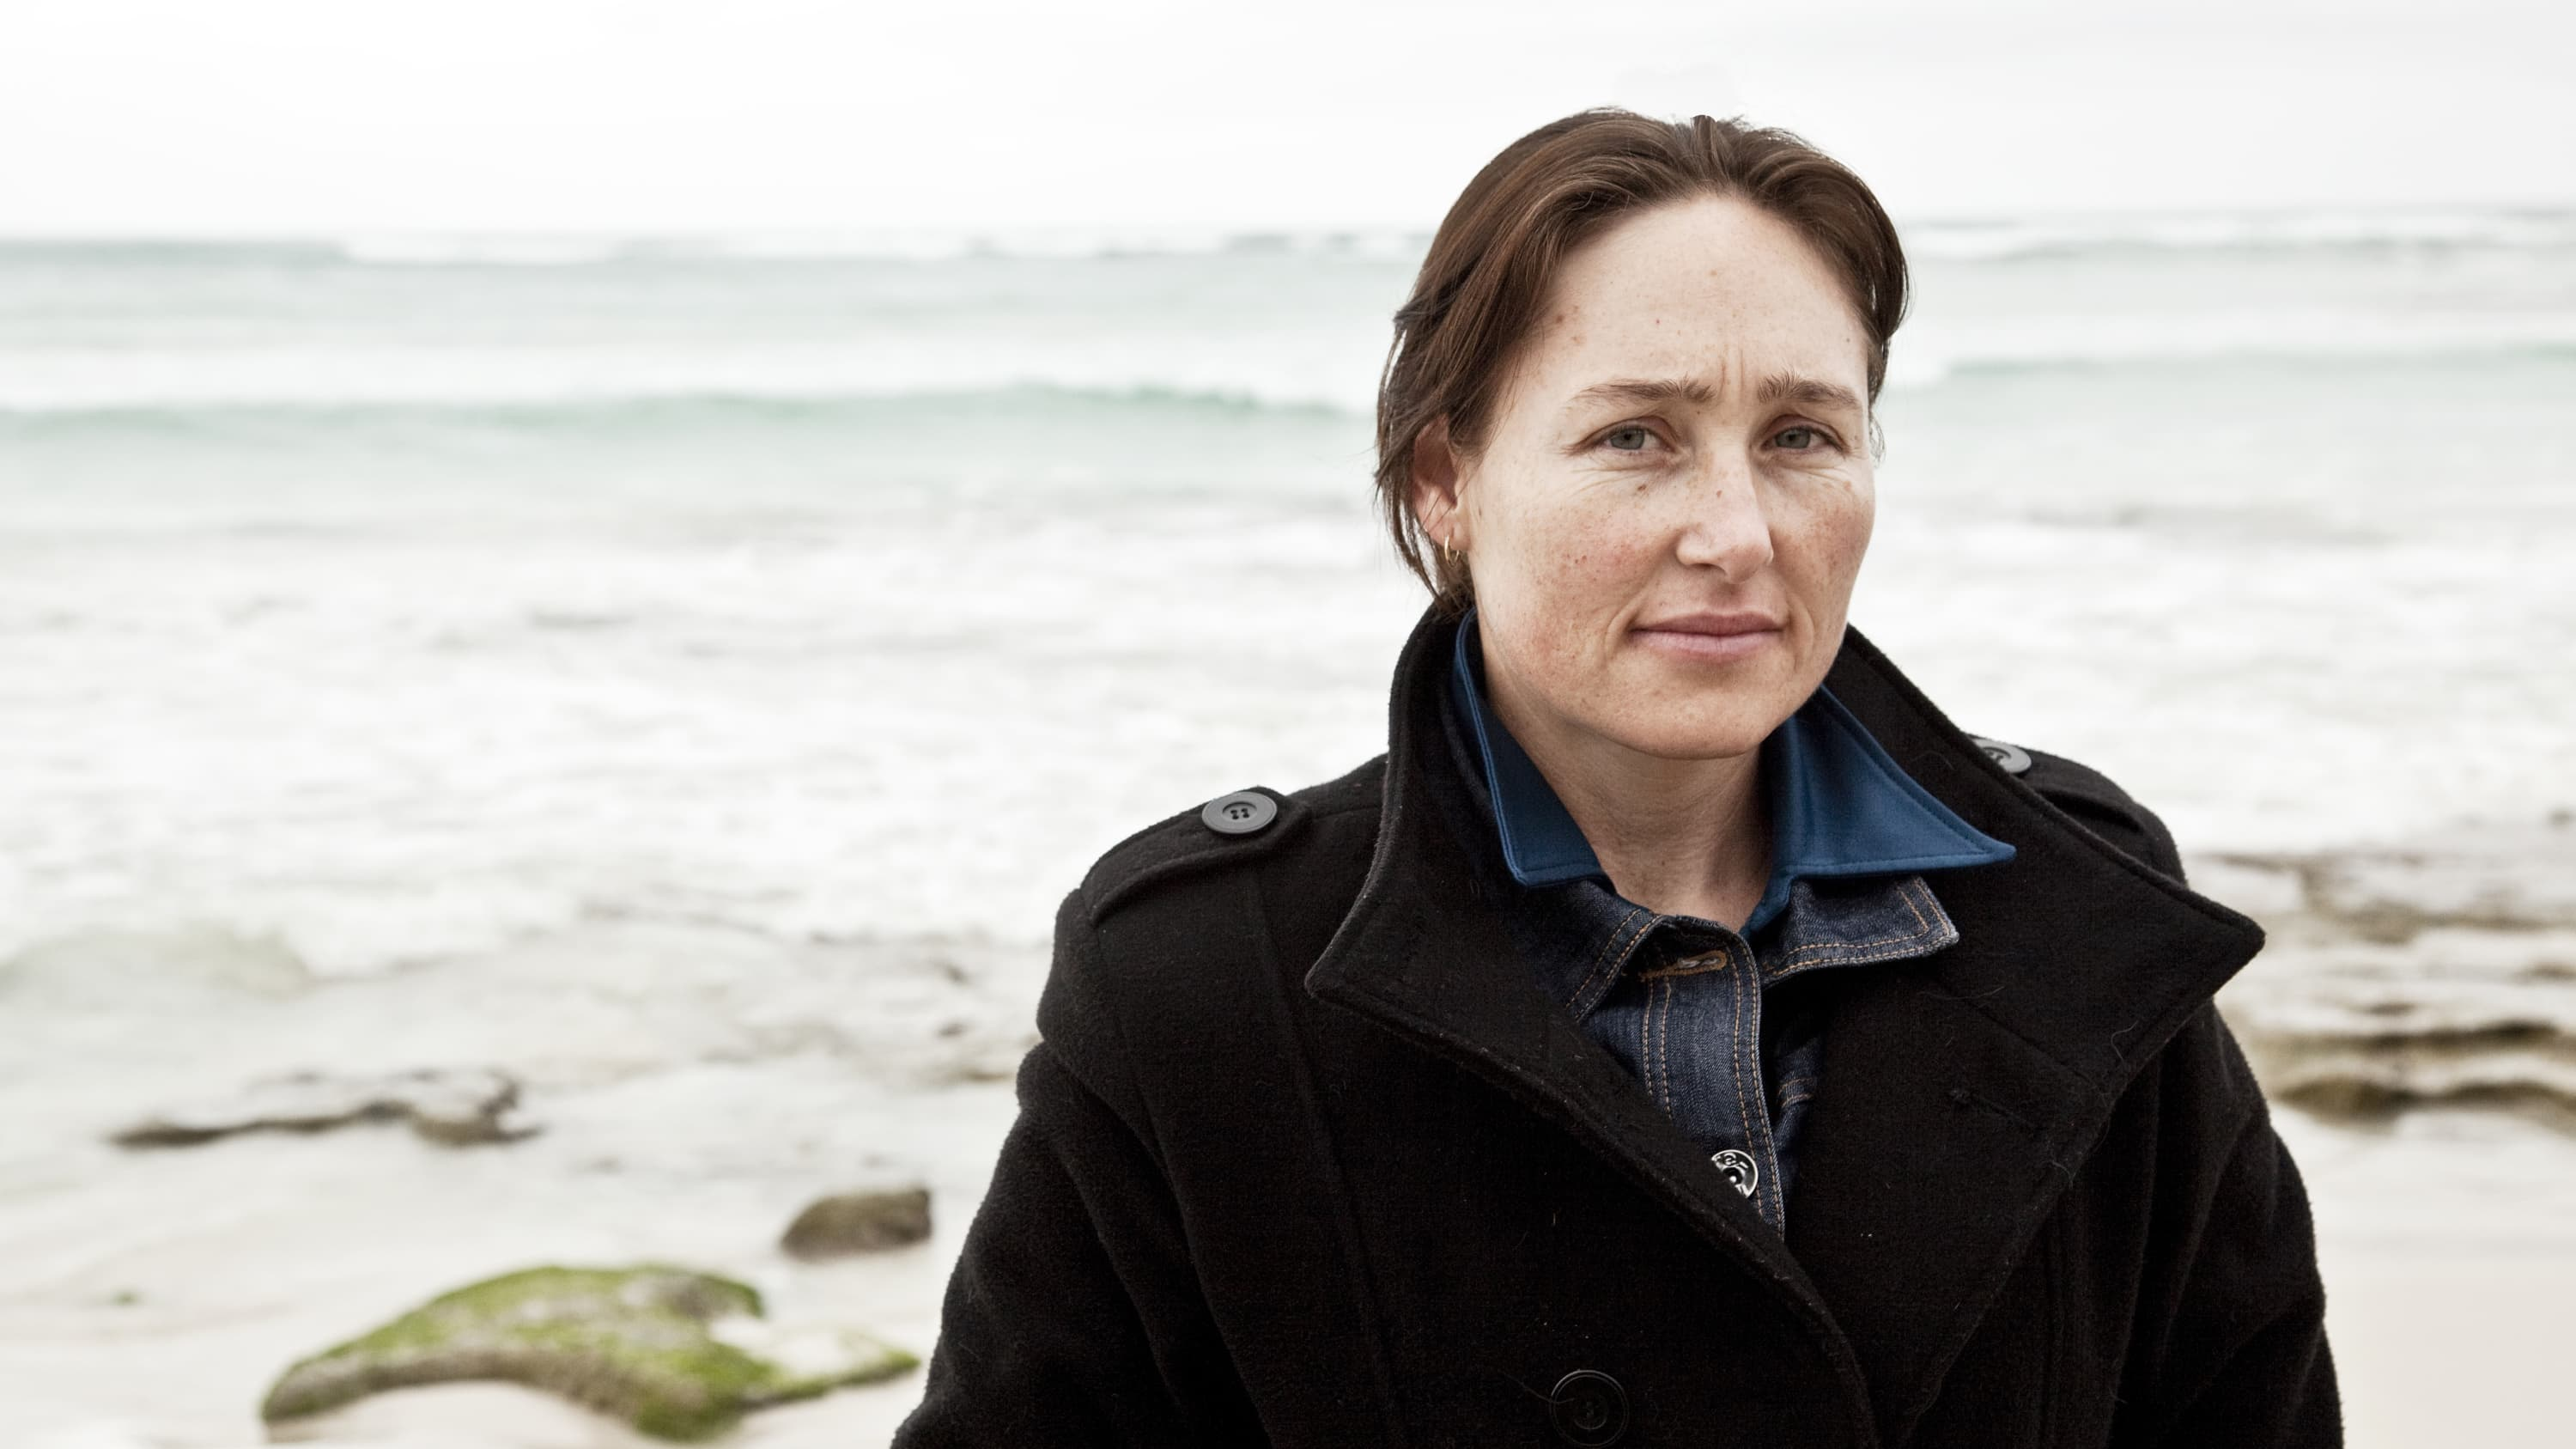 A woman on the beach looking worried, possibly because of a breast cancer diagnosis.